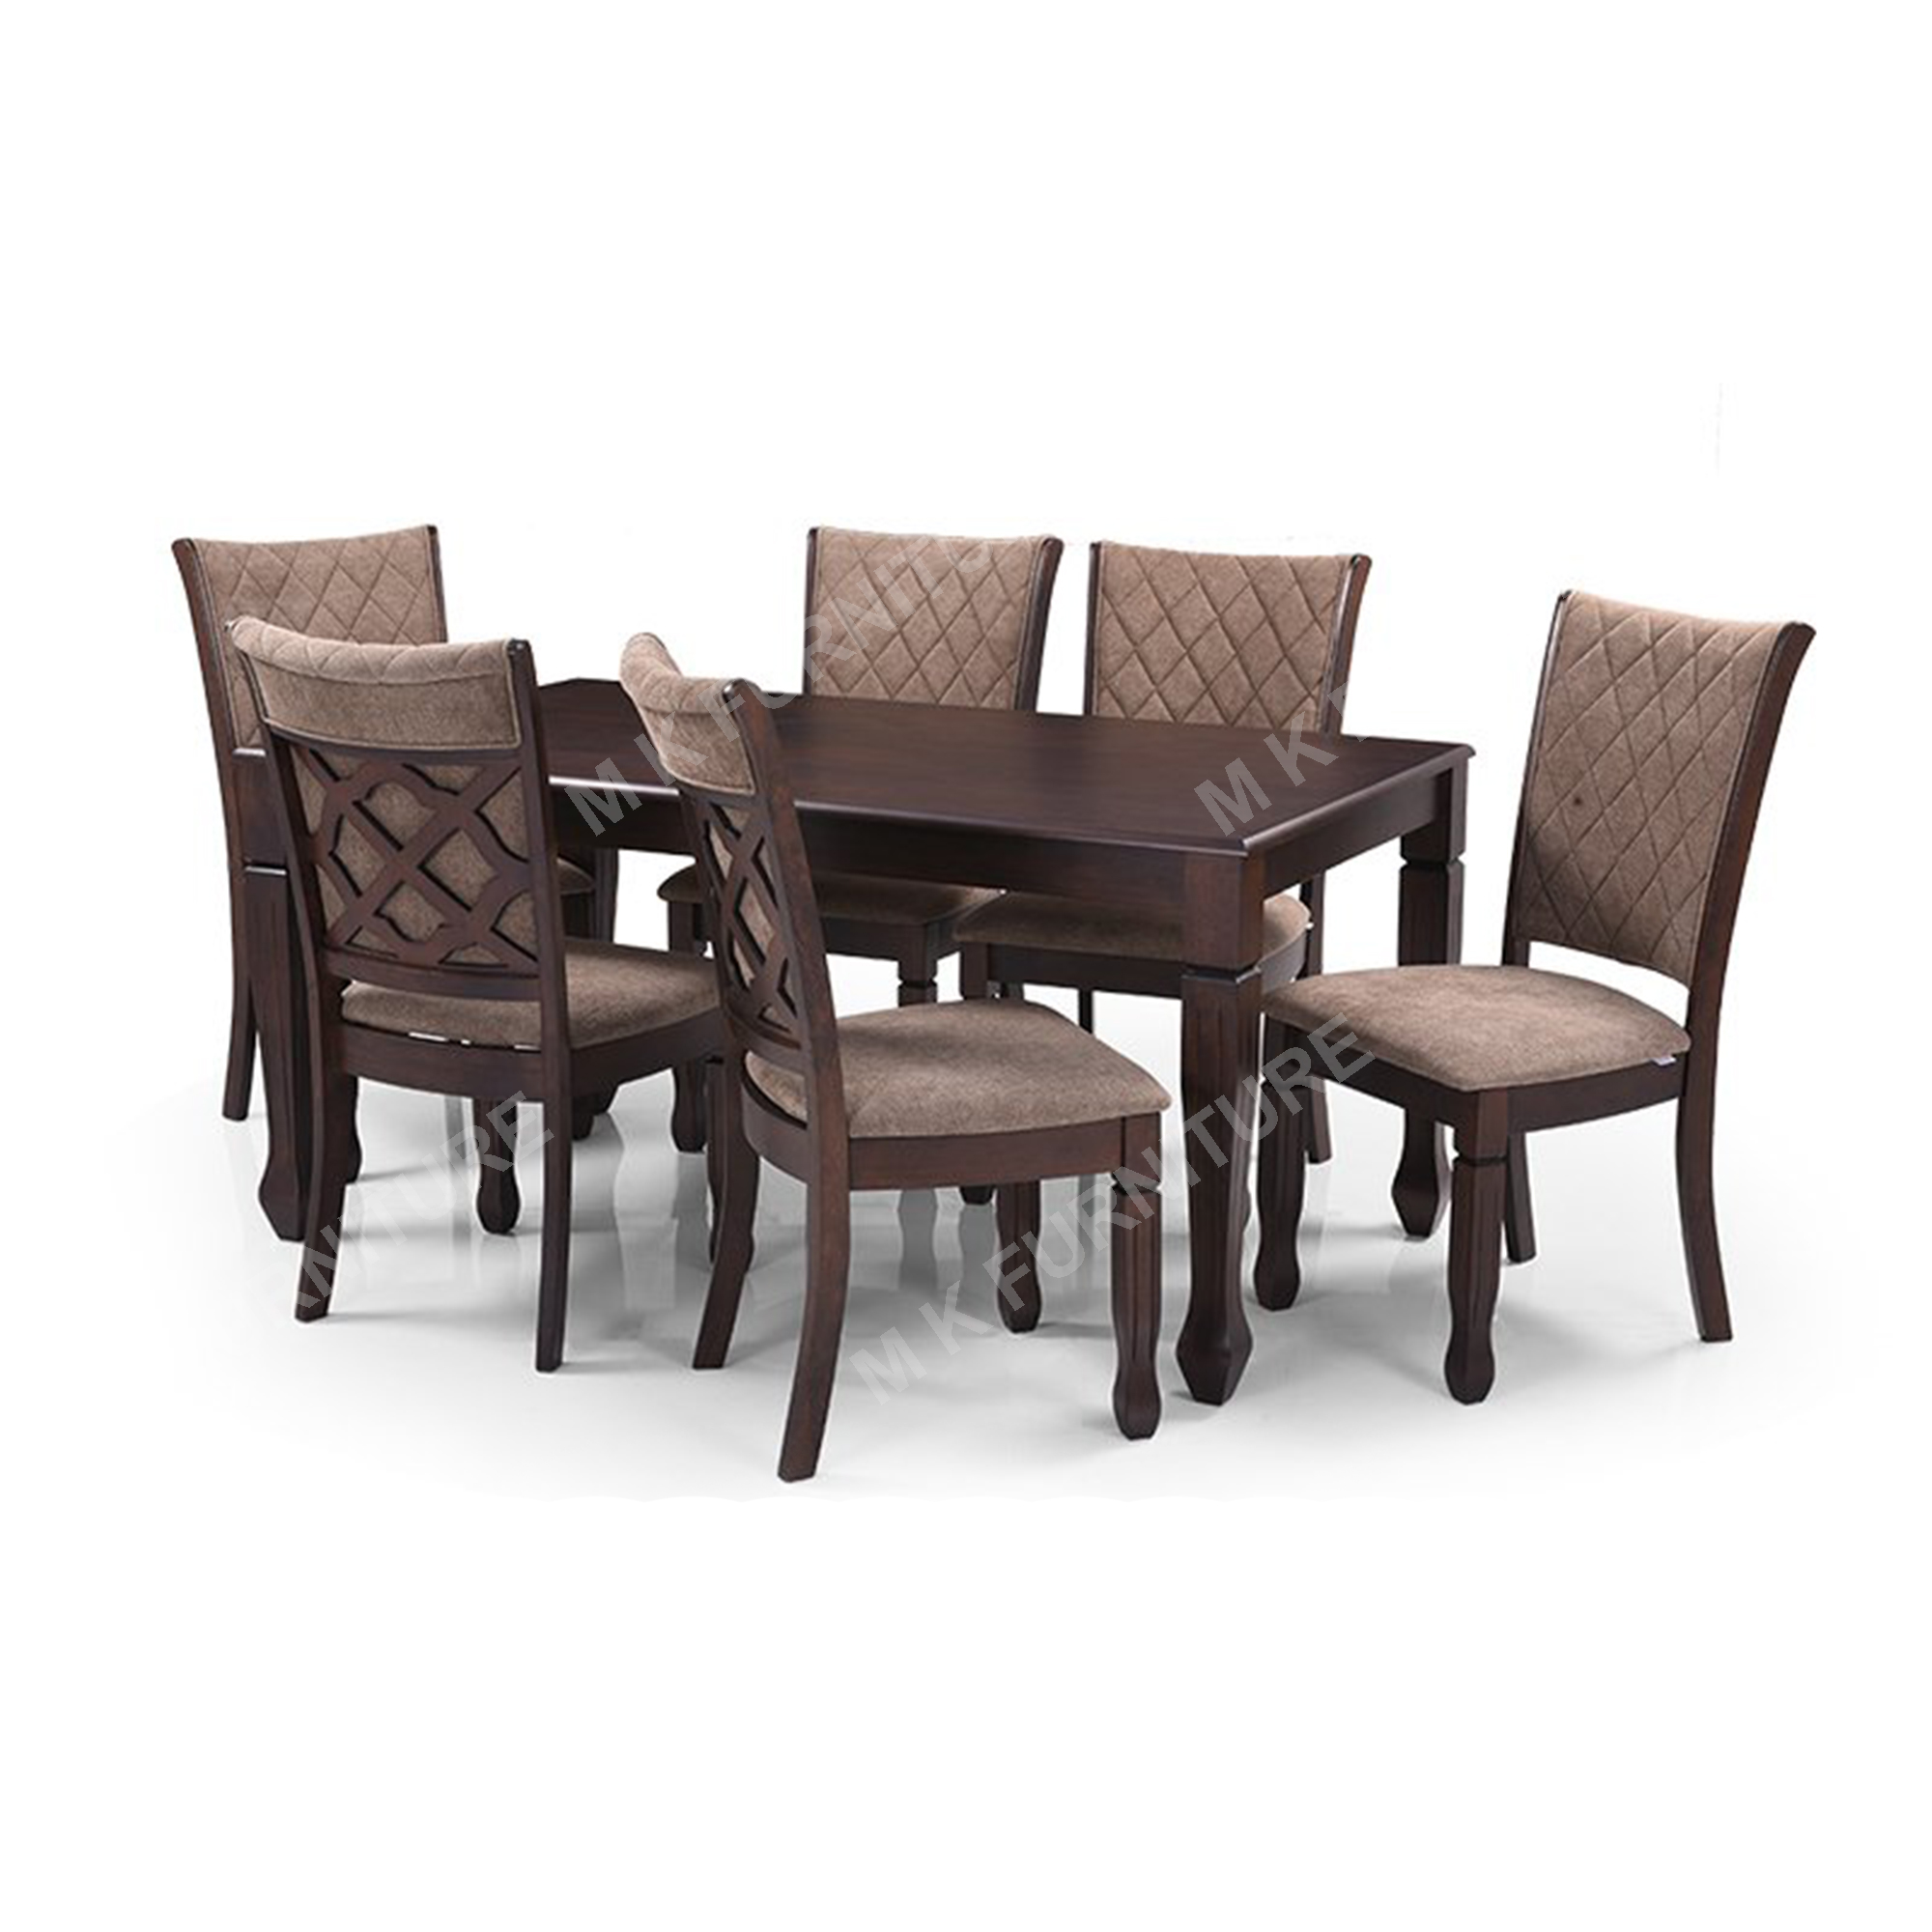 six seater solid wooden dining table